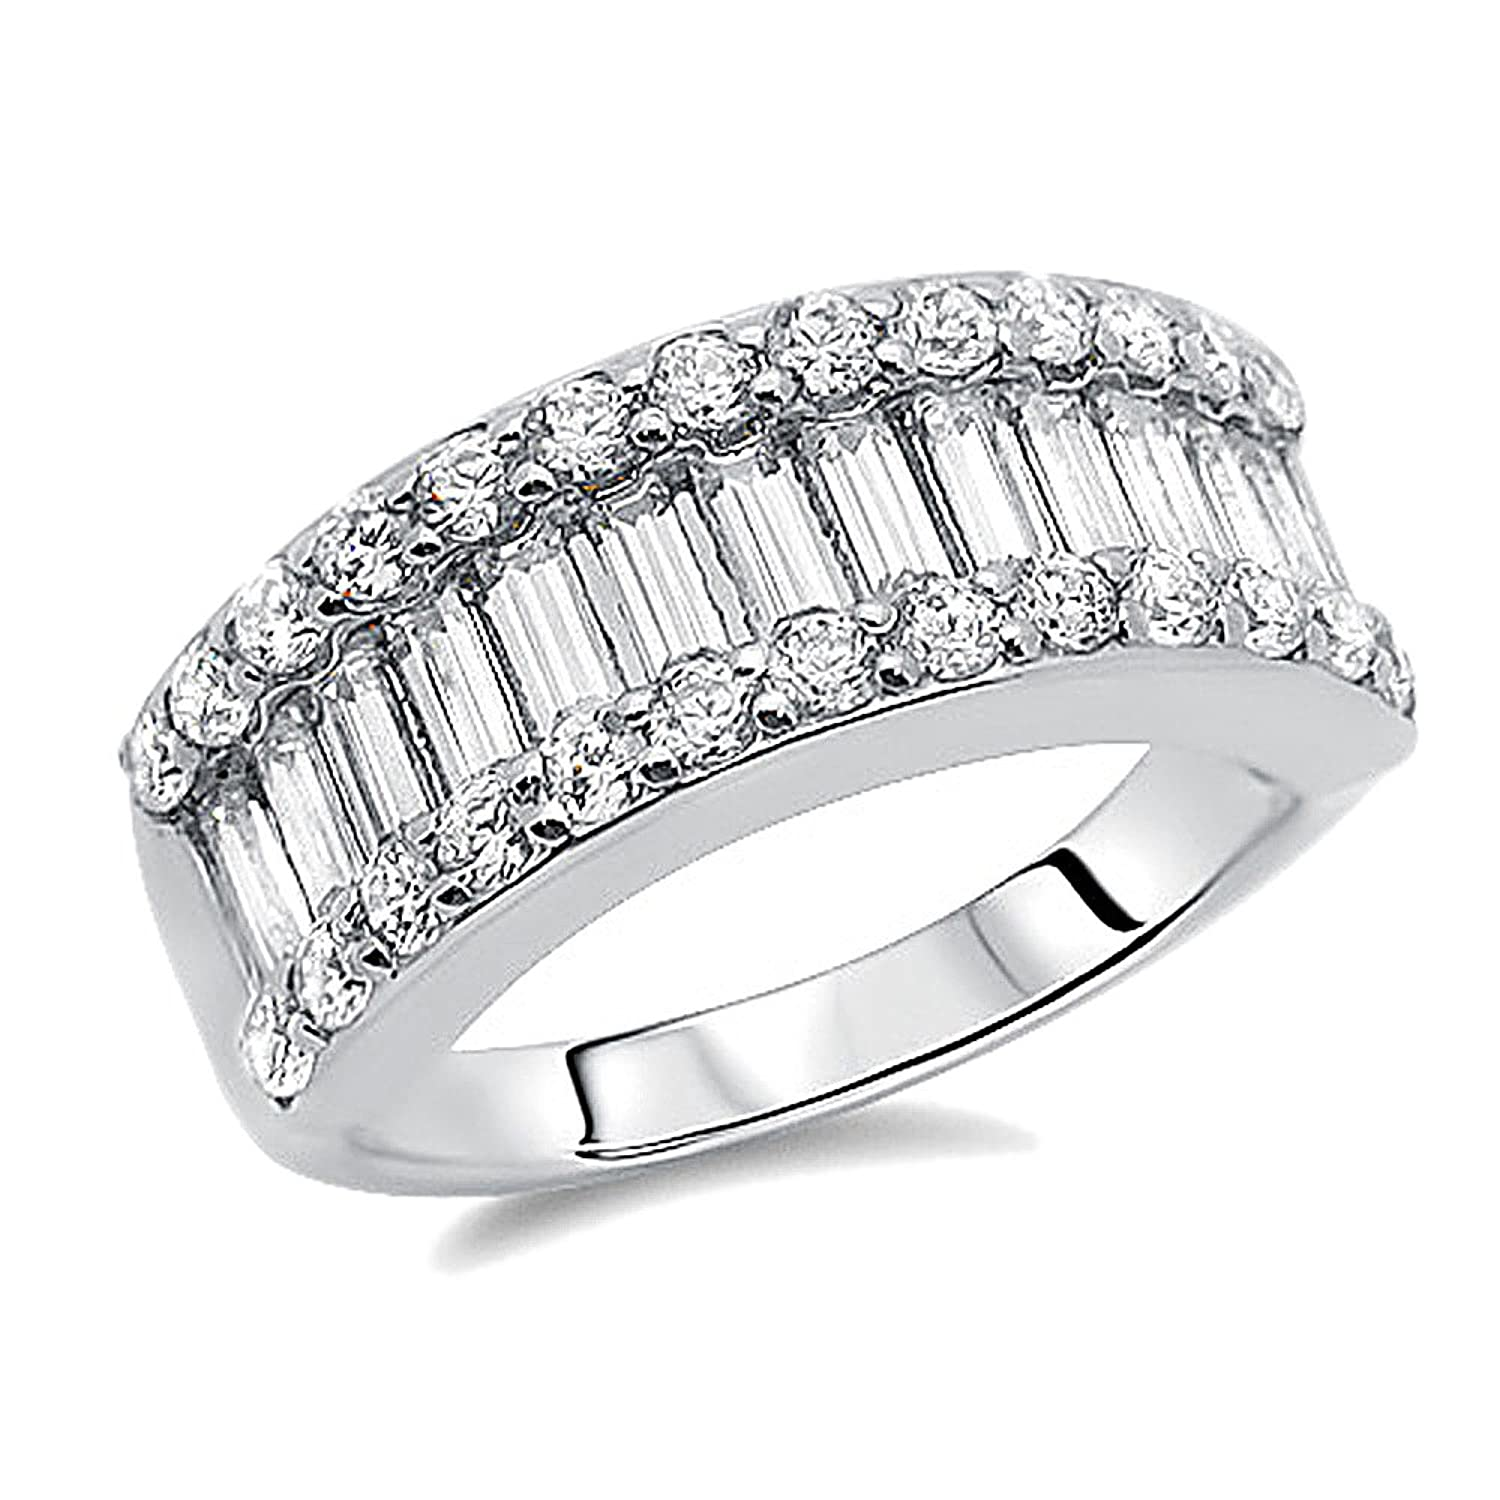 baguette ring bands eternity white round diamond product gold band